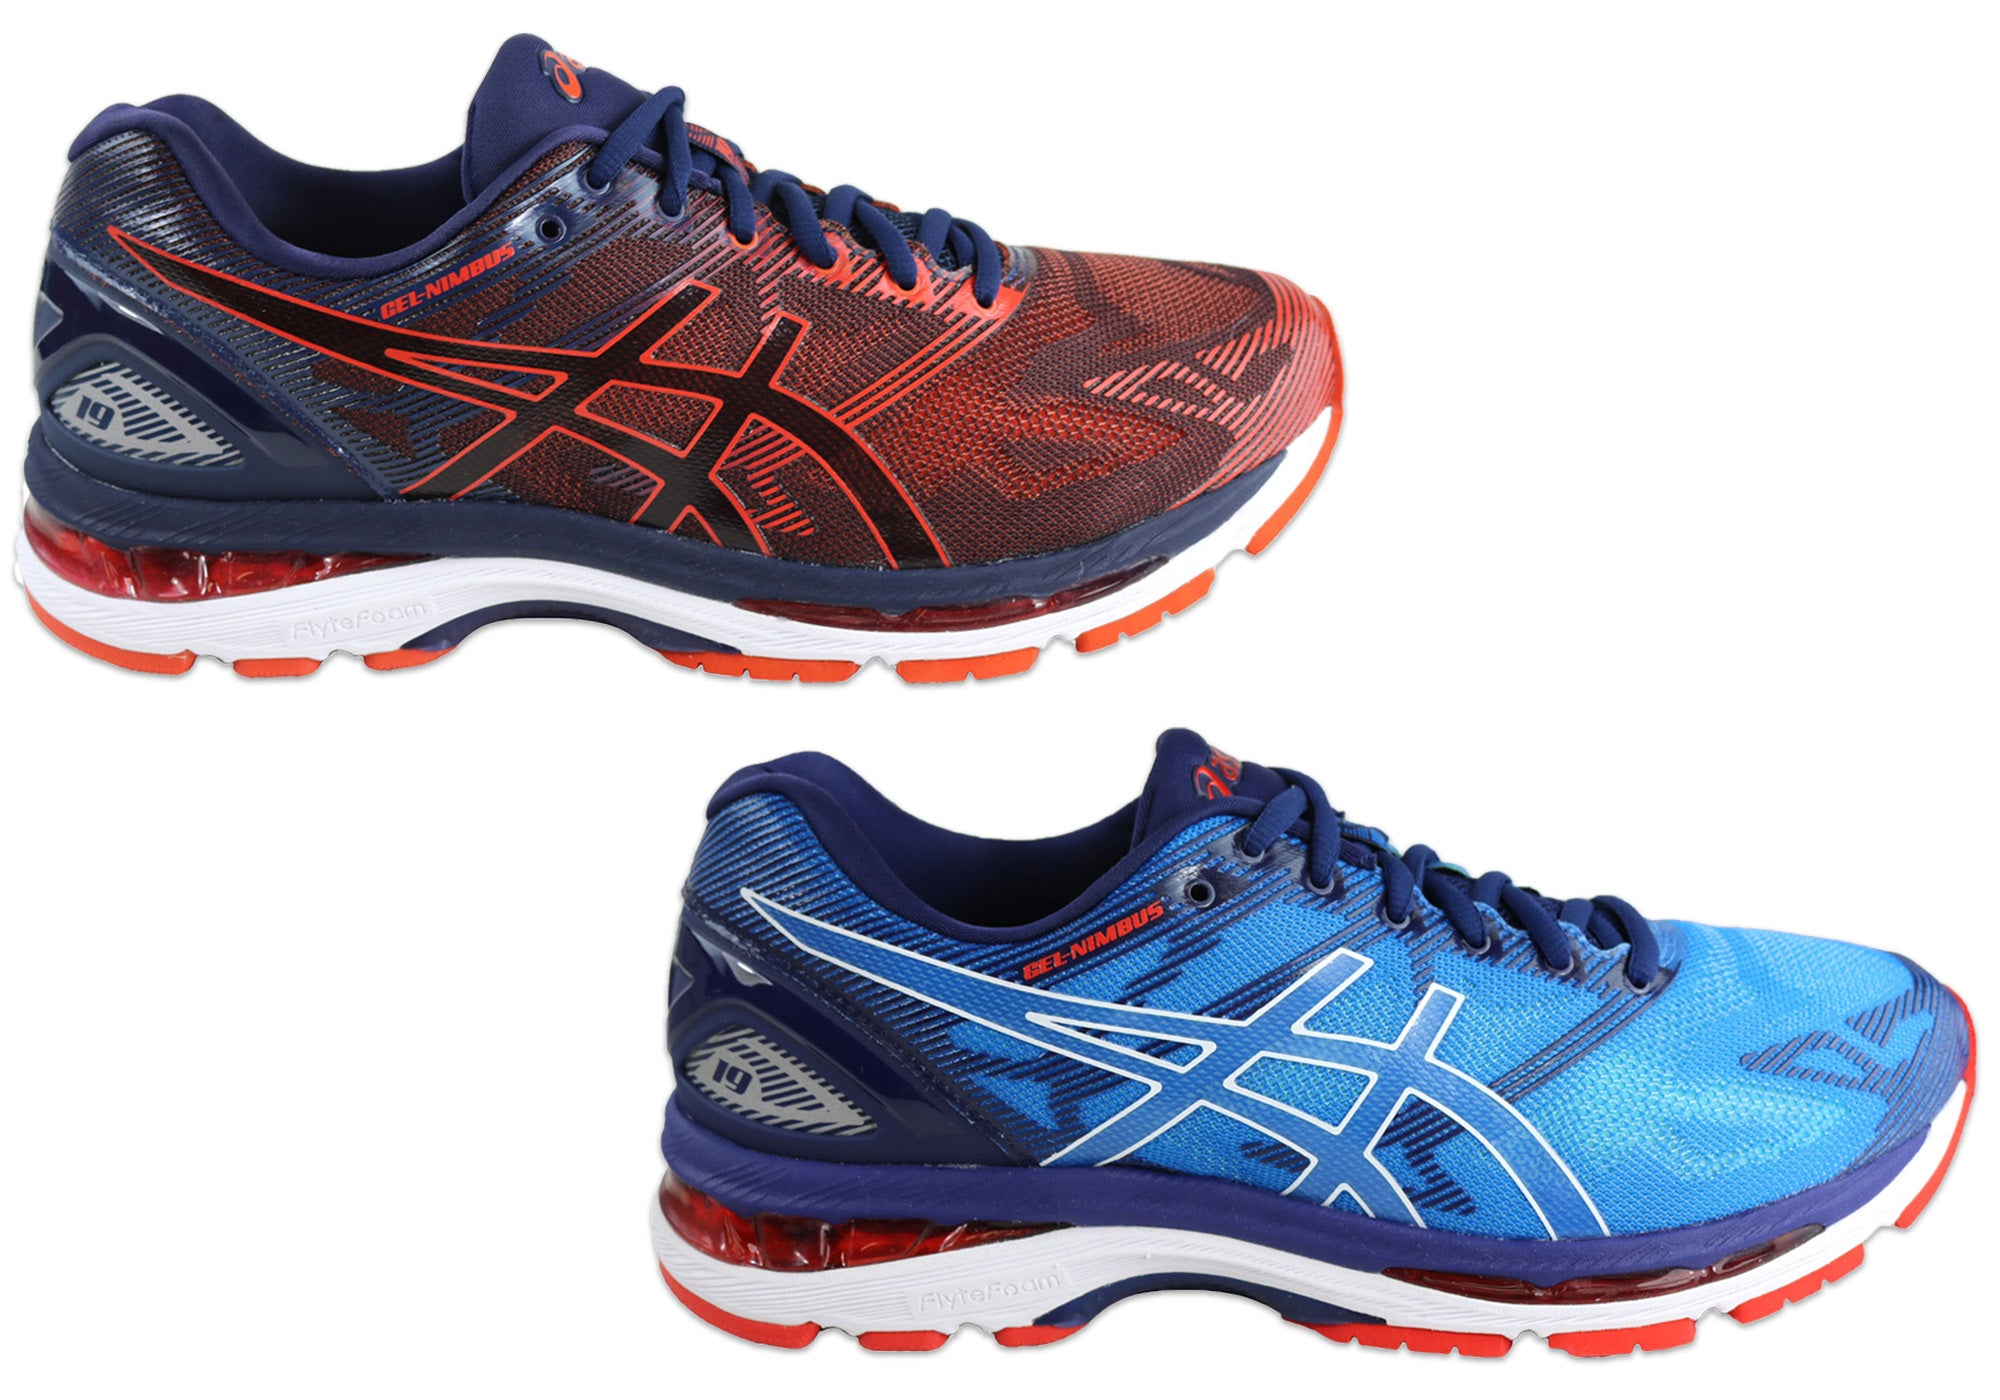 2bdbcc0984f8 Details about NEW ASICS GEL-NIMBUS 19 MENS PREMIUM CUSHIONED RUNNING SPORT  SHOES